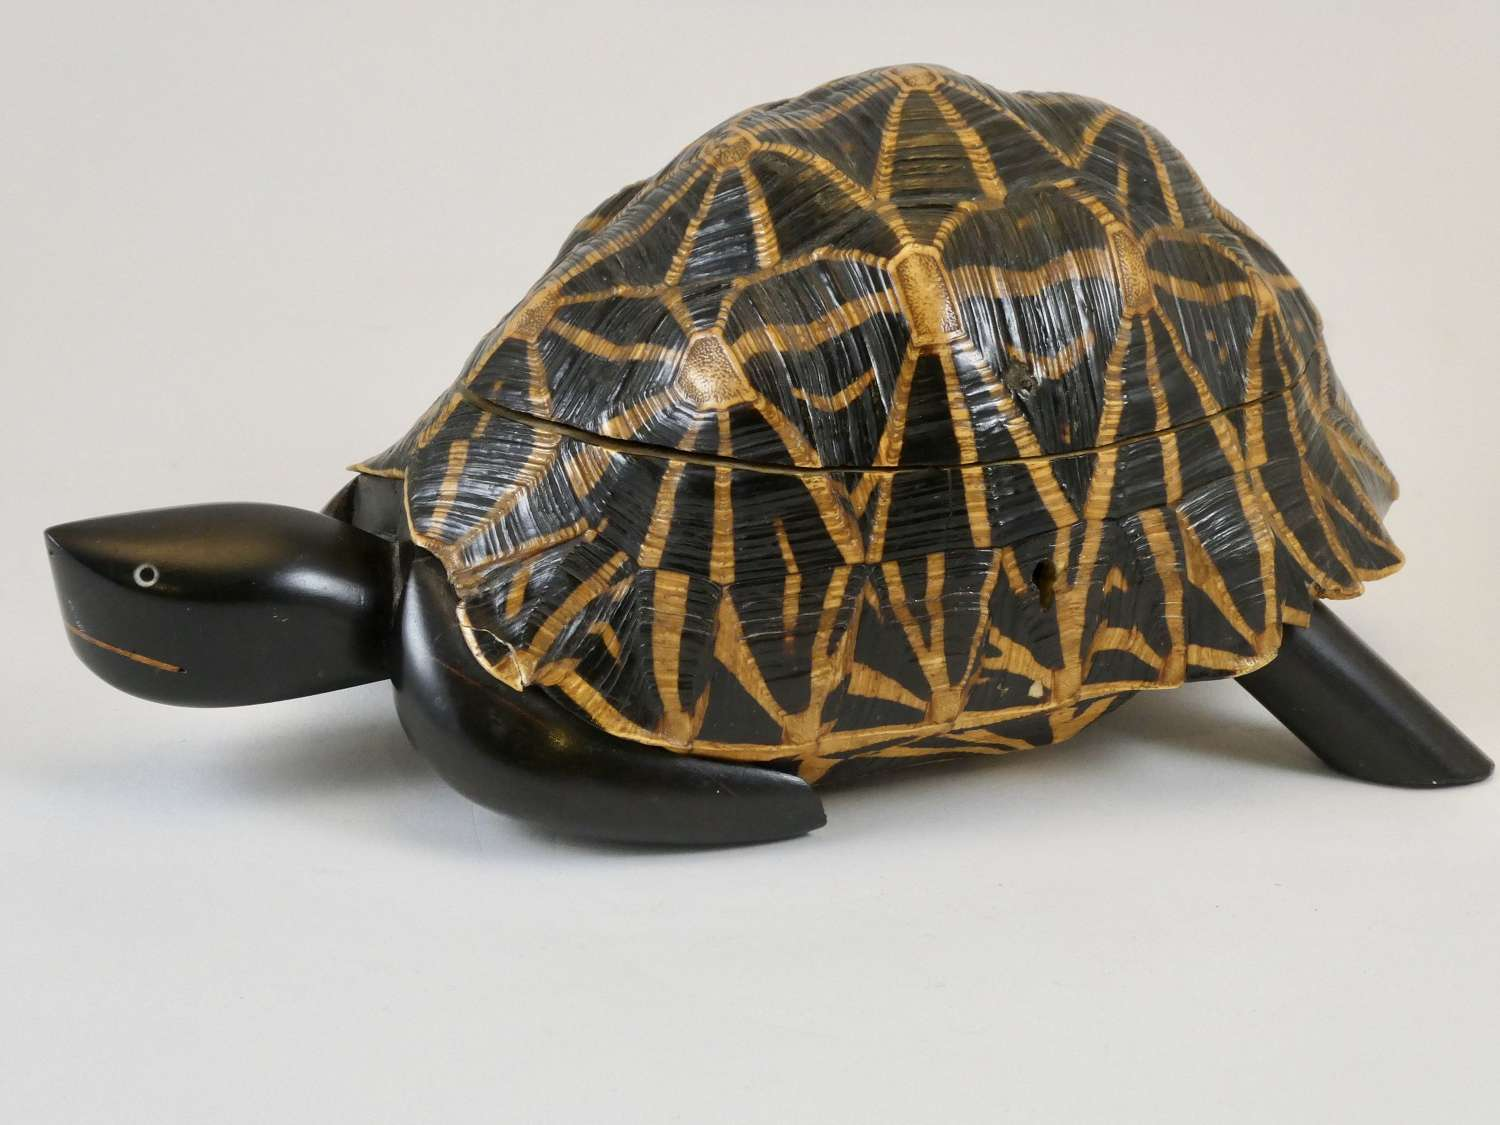 Indian Star Tortoise Trinket Box